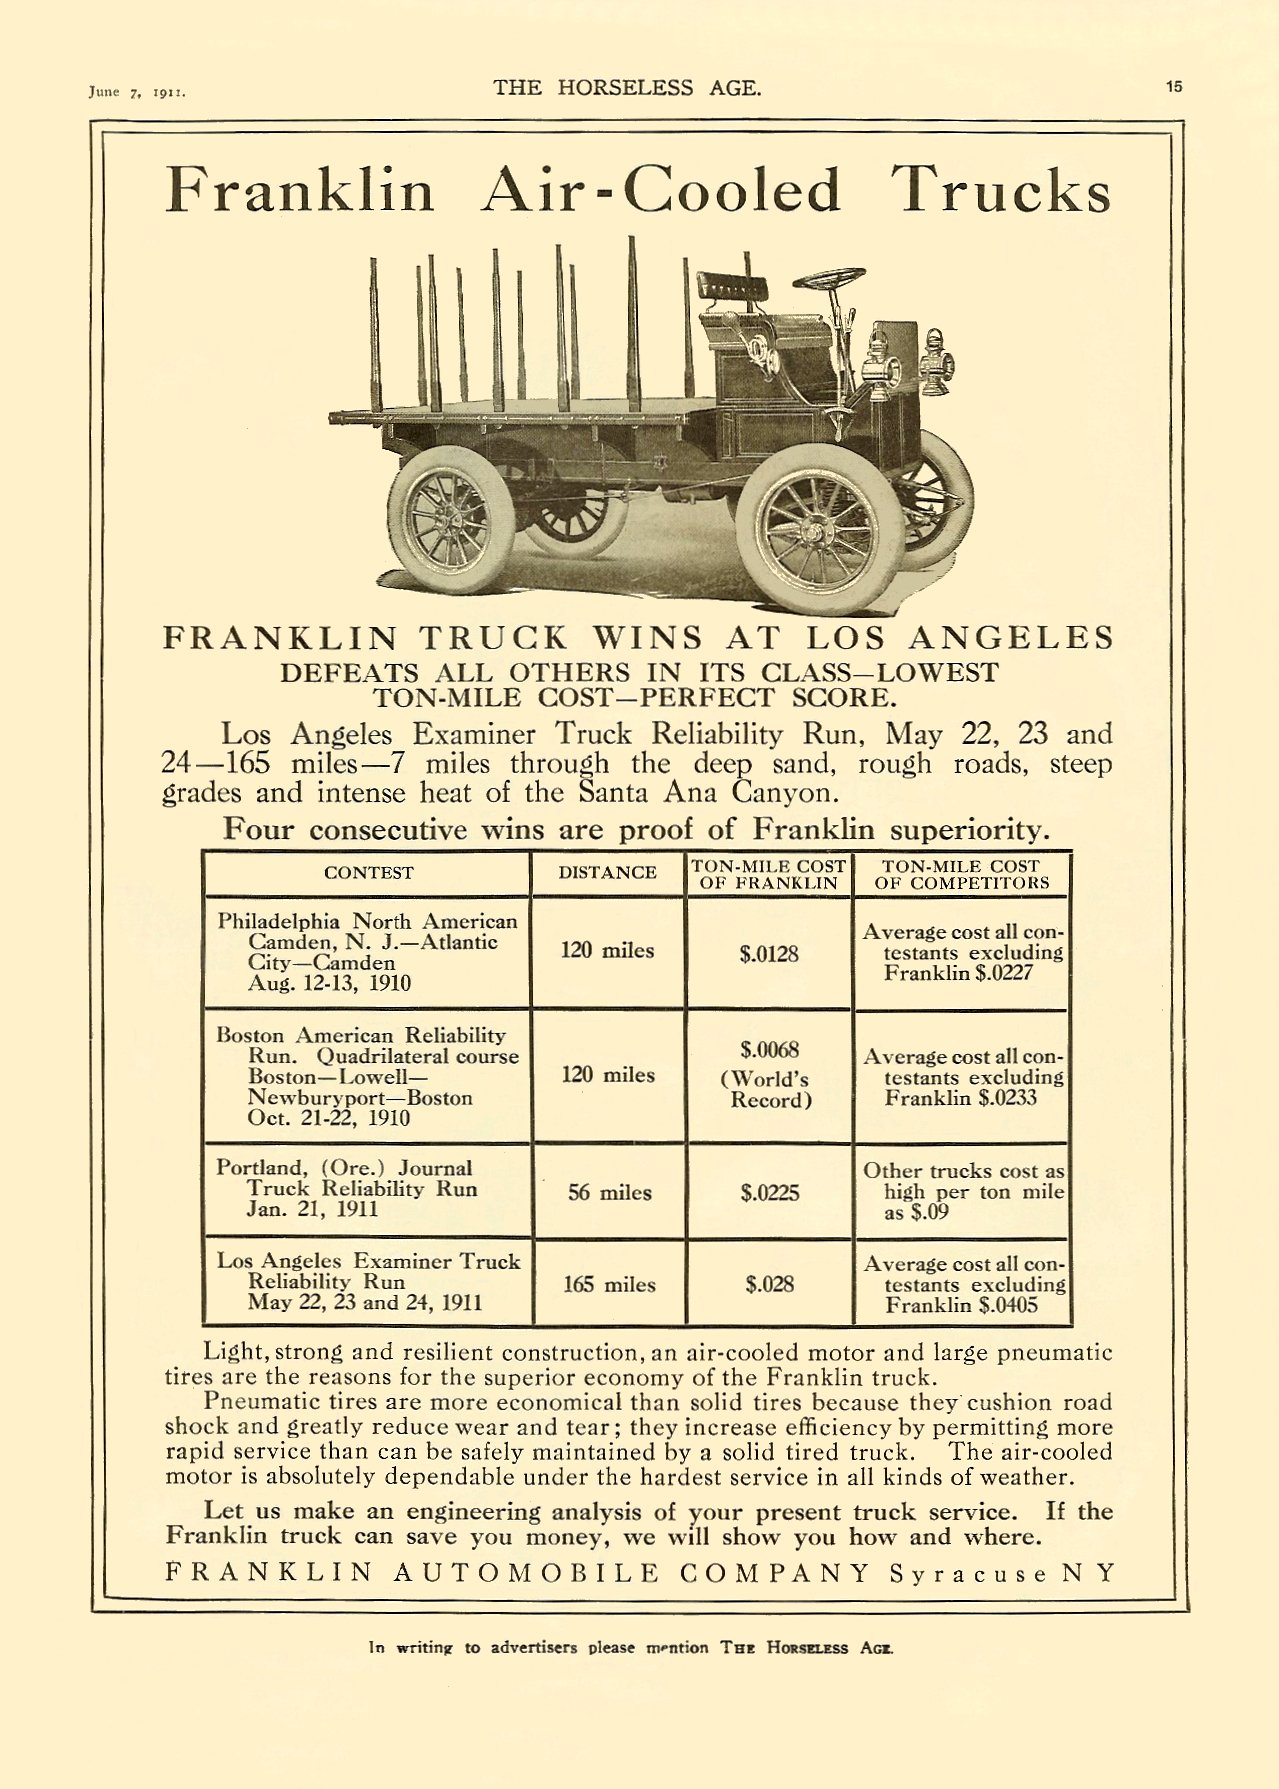 1911 6 7 Franklin Air-Cooled Trucks Franklin Automobile Company Syracuse, New York THE HORSELESS AGE June 7, 1911 Vol. 27 No. 23 9″x12″ page 15